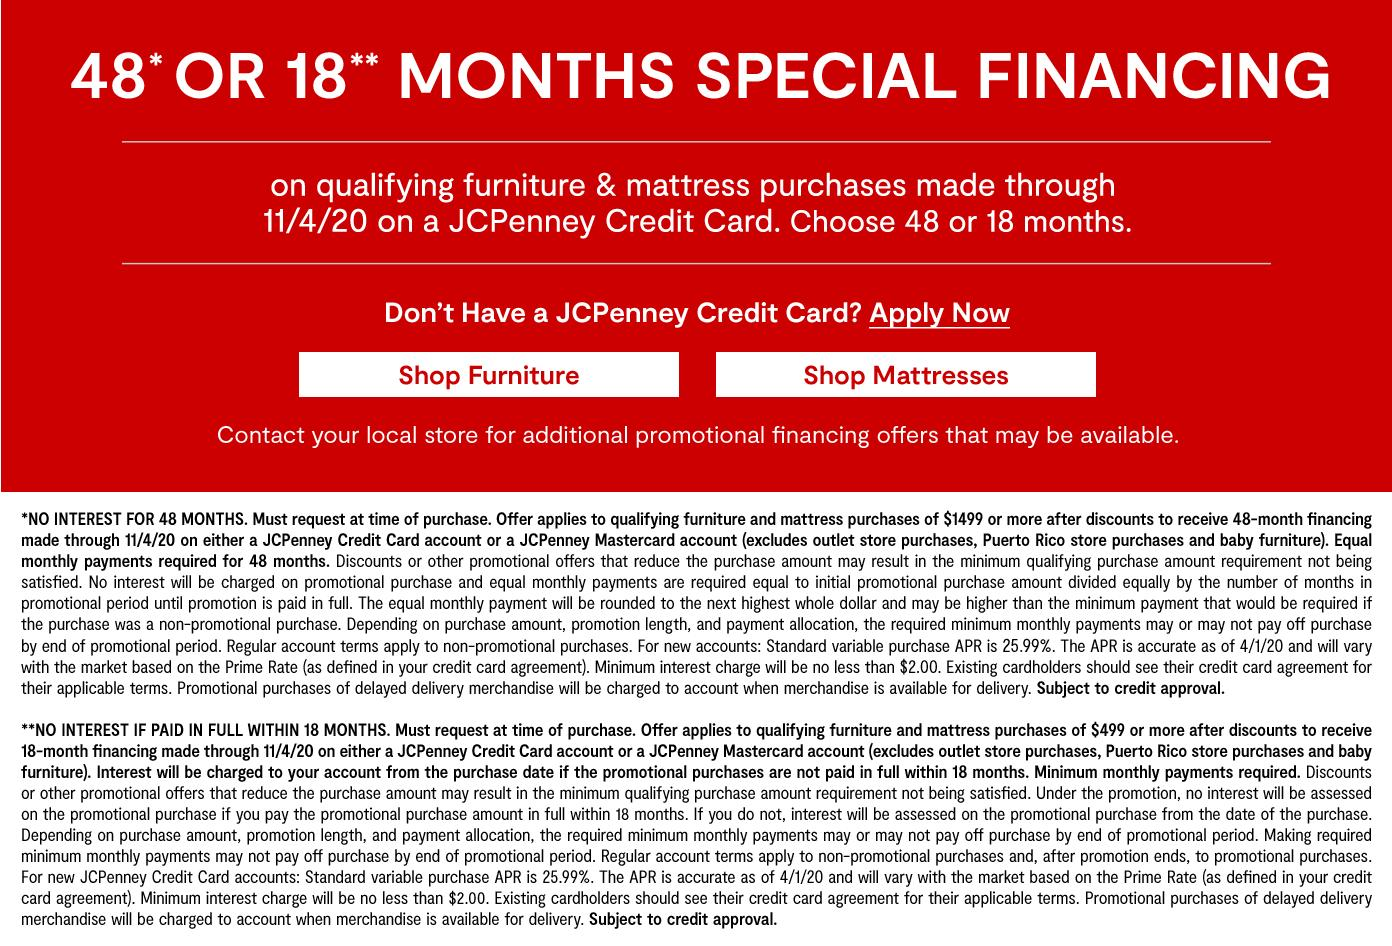 48 or 18 months special financing on qualifying furniture & mattress purchases by 11/4/20 on JCP Credit Card